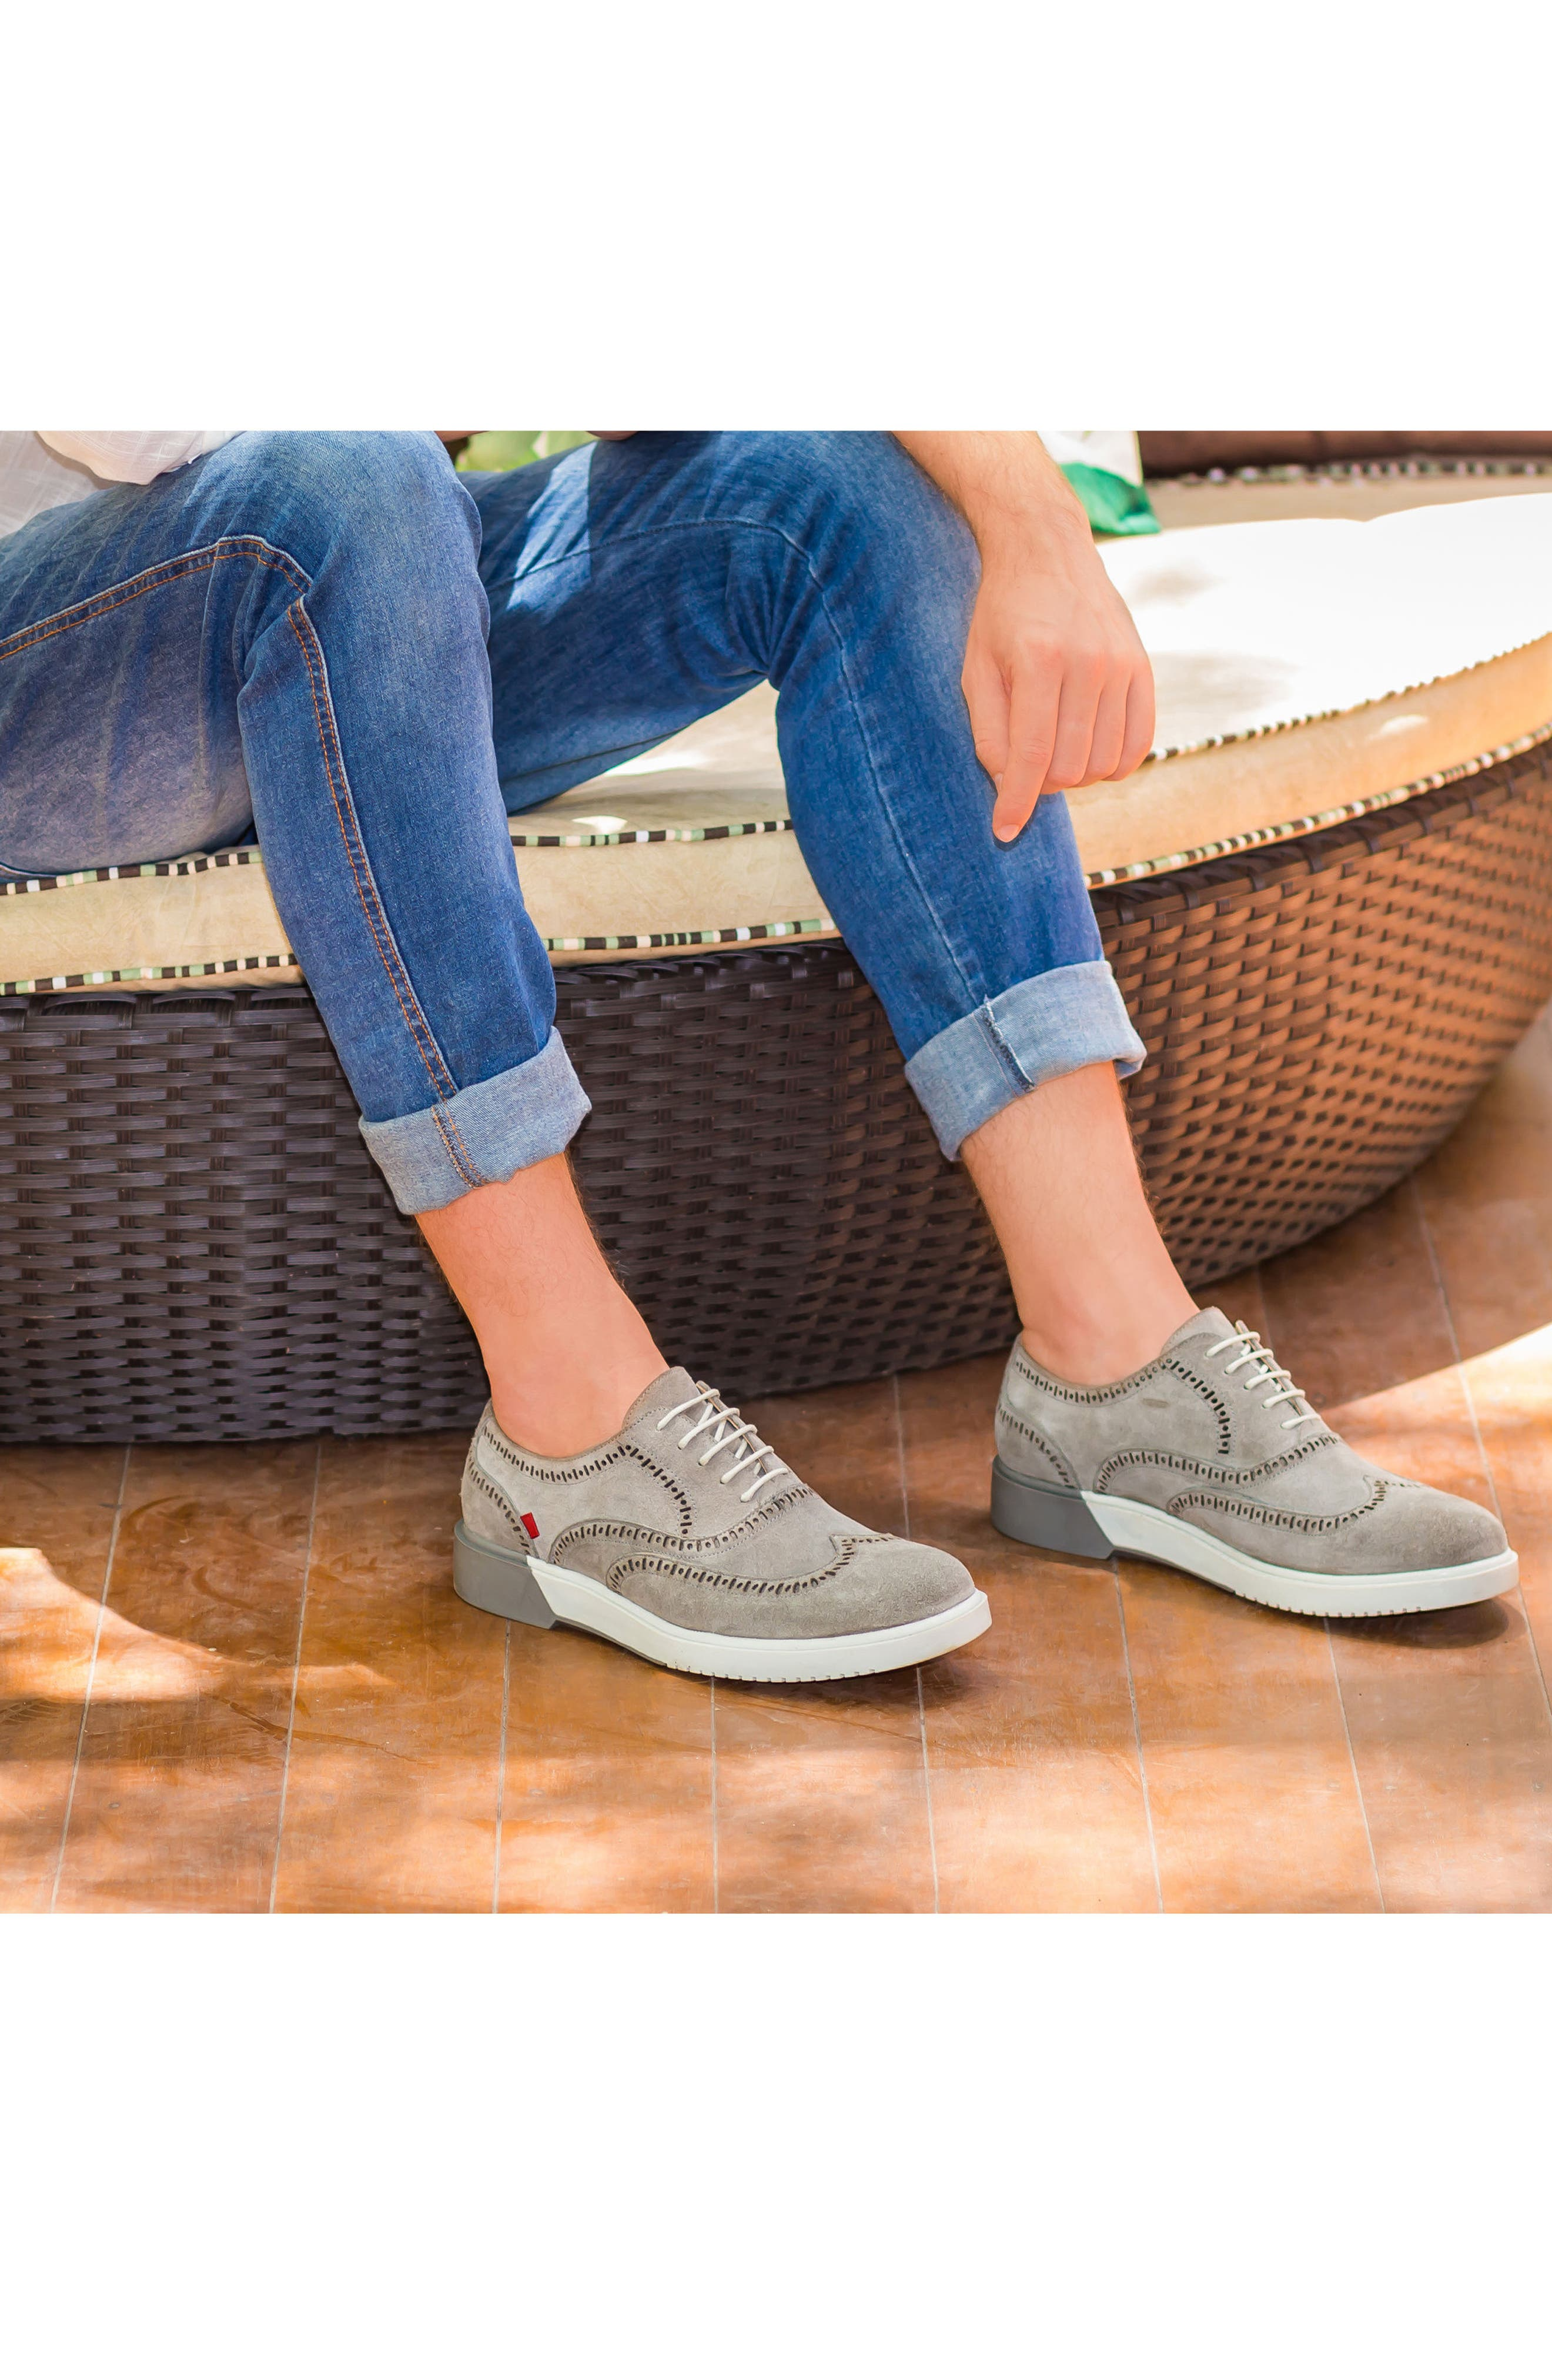 5th Ave Wingtip Sneaker,                             Alternate thumbnail 8, color,                             GREY SUEDE